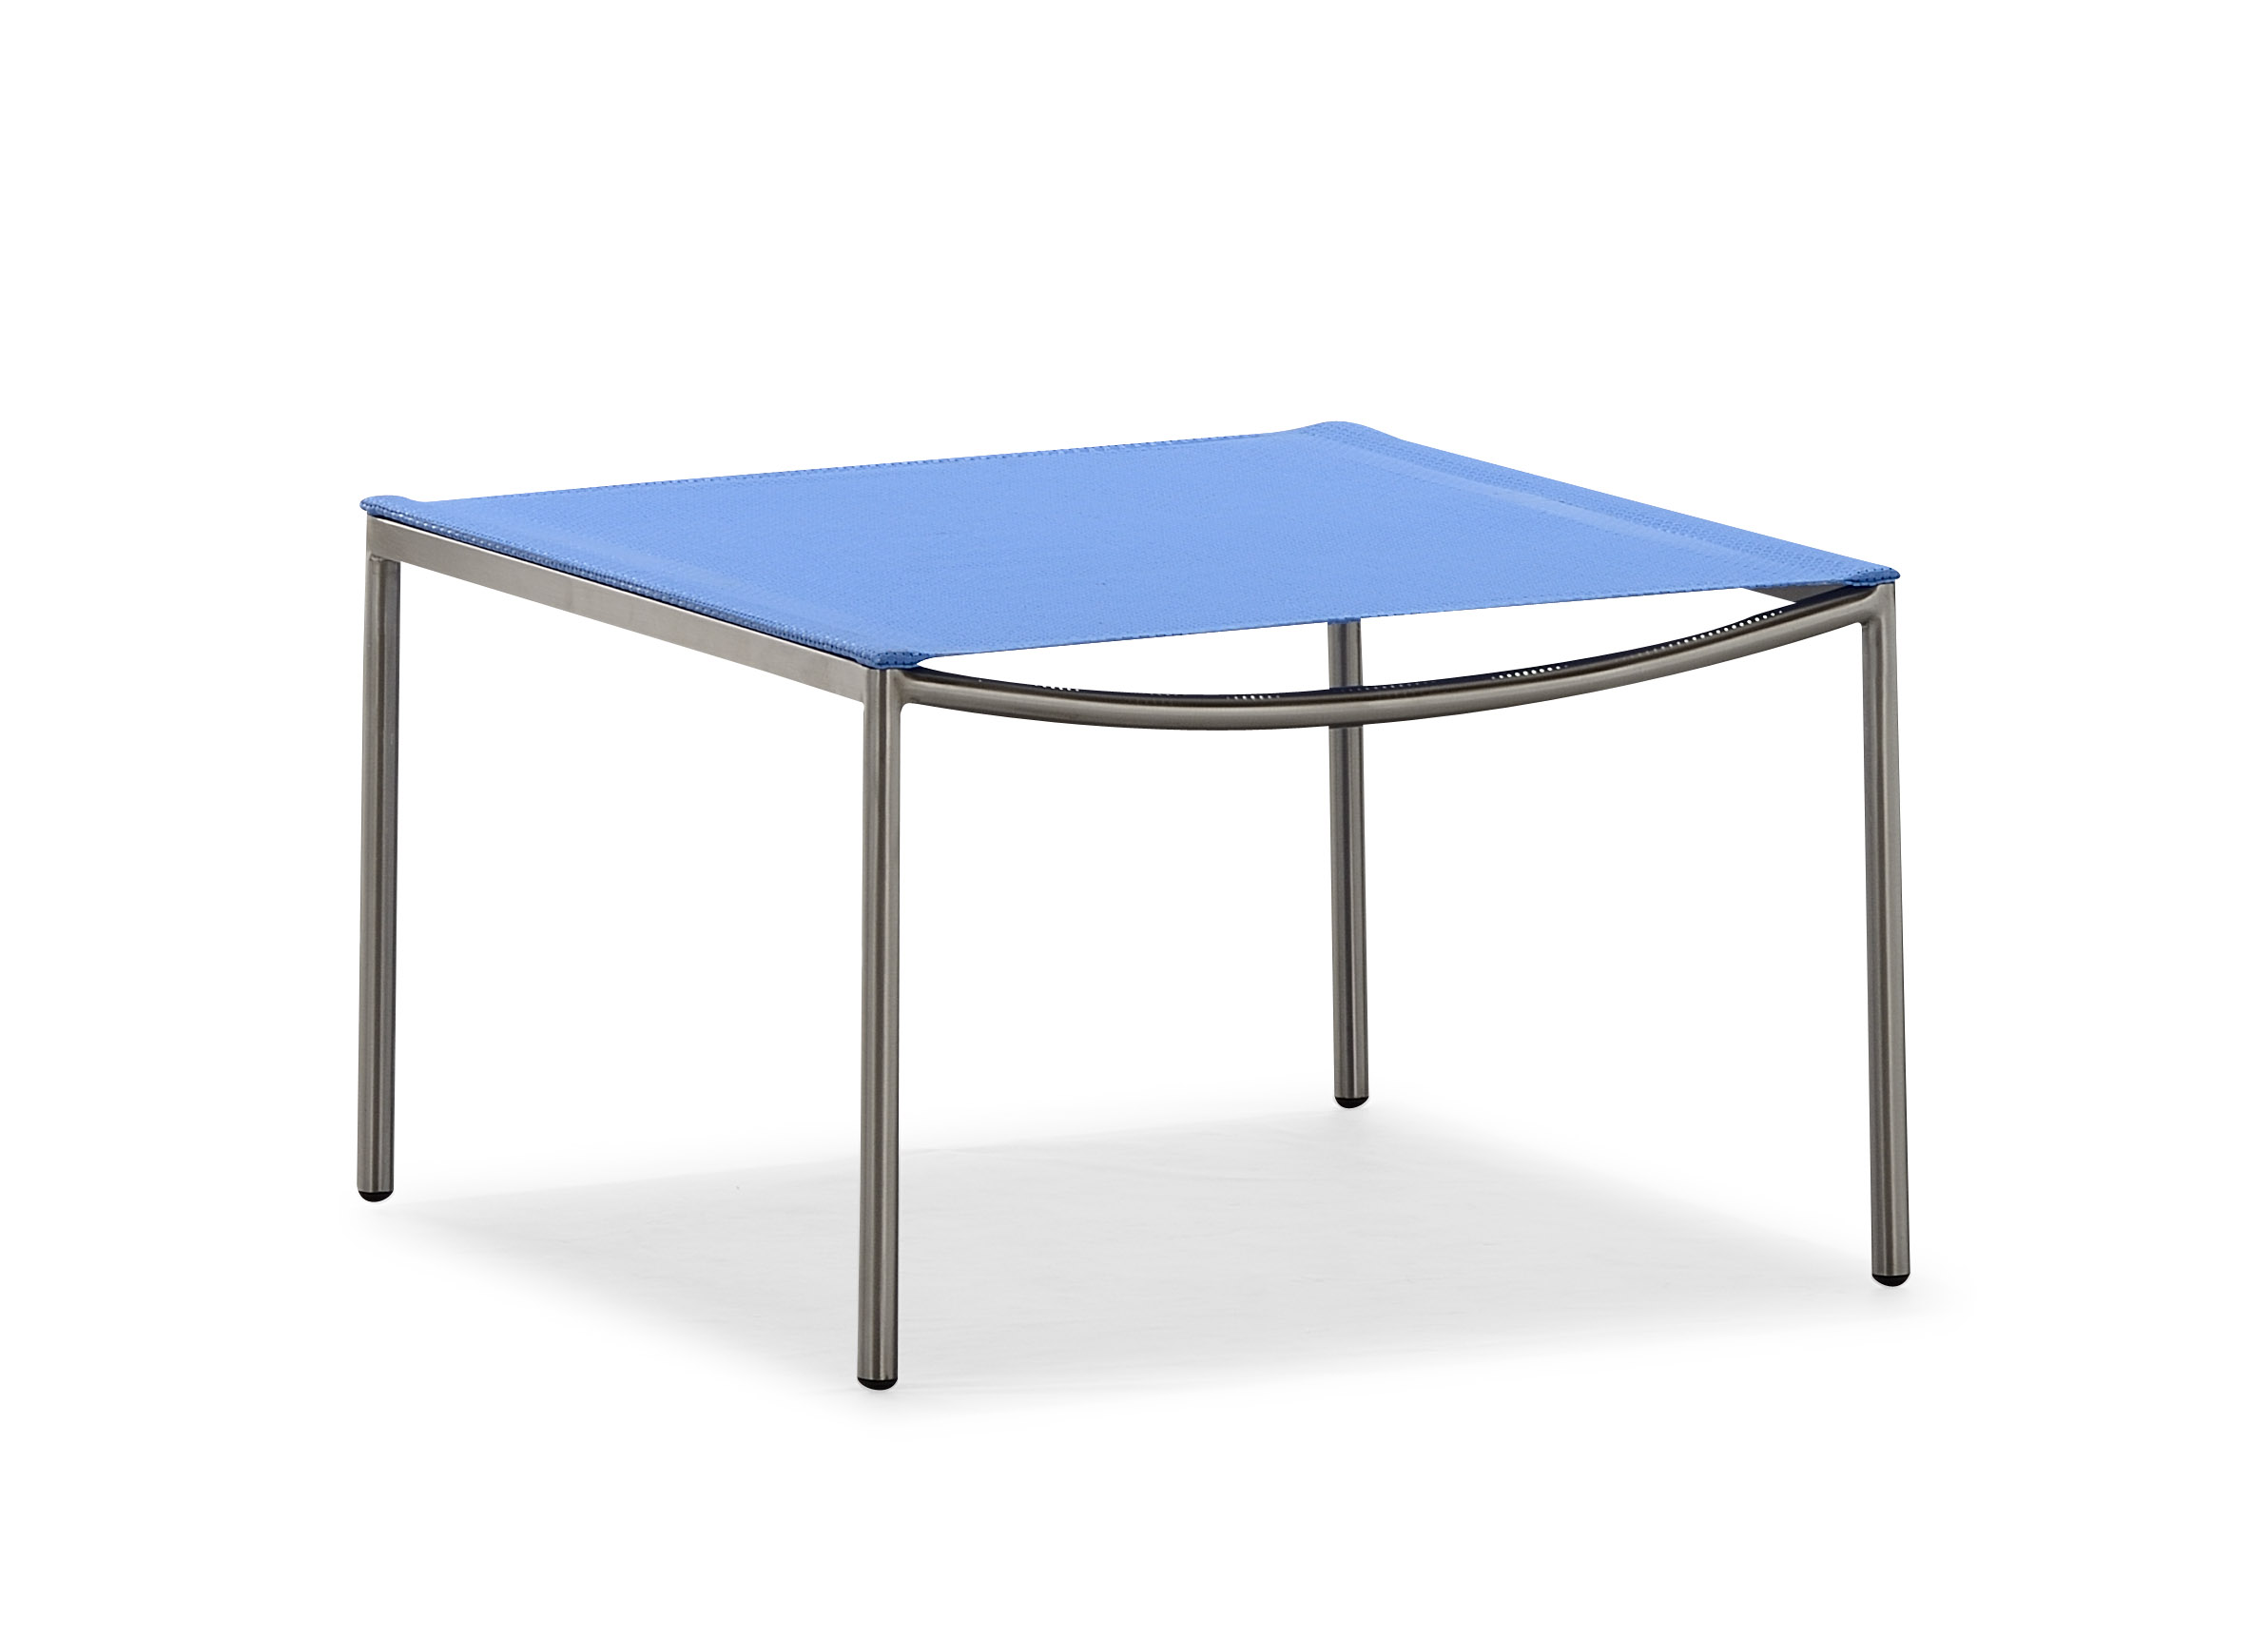 Metal garden furniture blue ottoman (S067BJ)